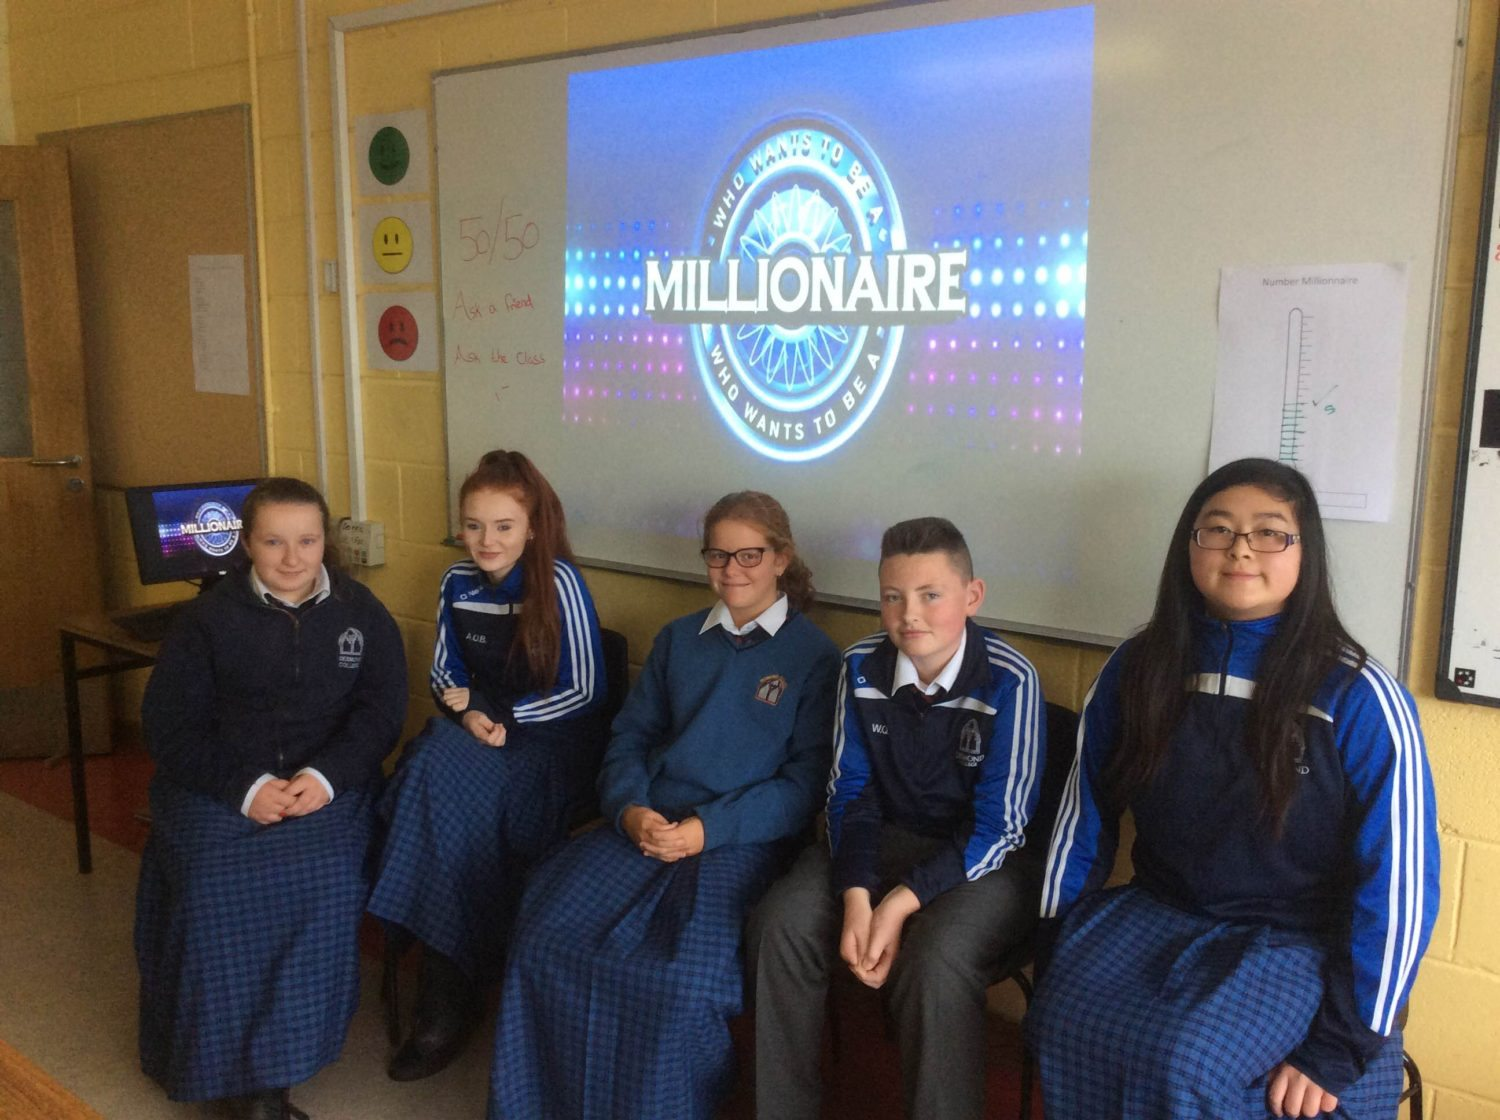 September 2016: Desmond College Second Year Students play Millionaire to help practice their numeracy skills